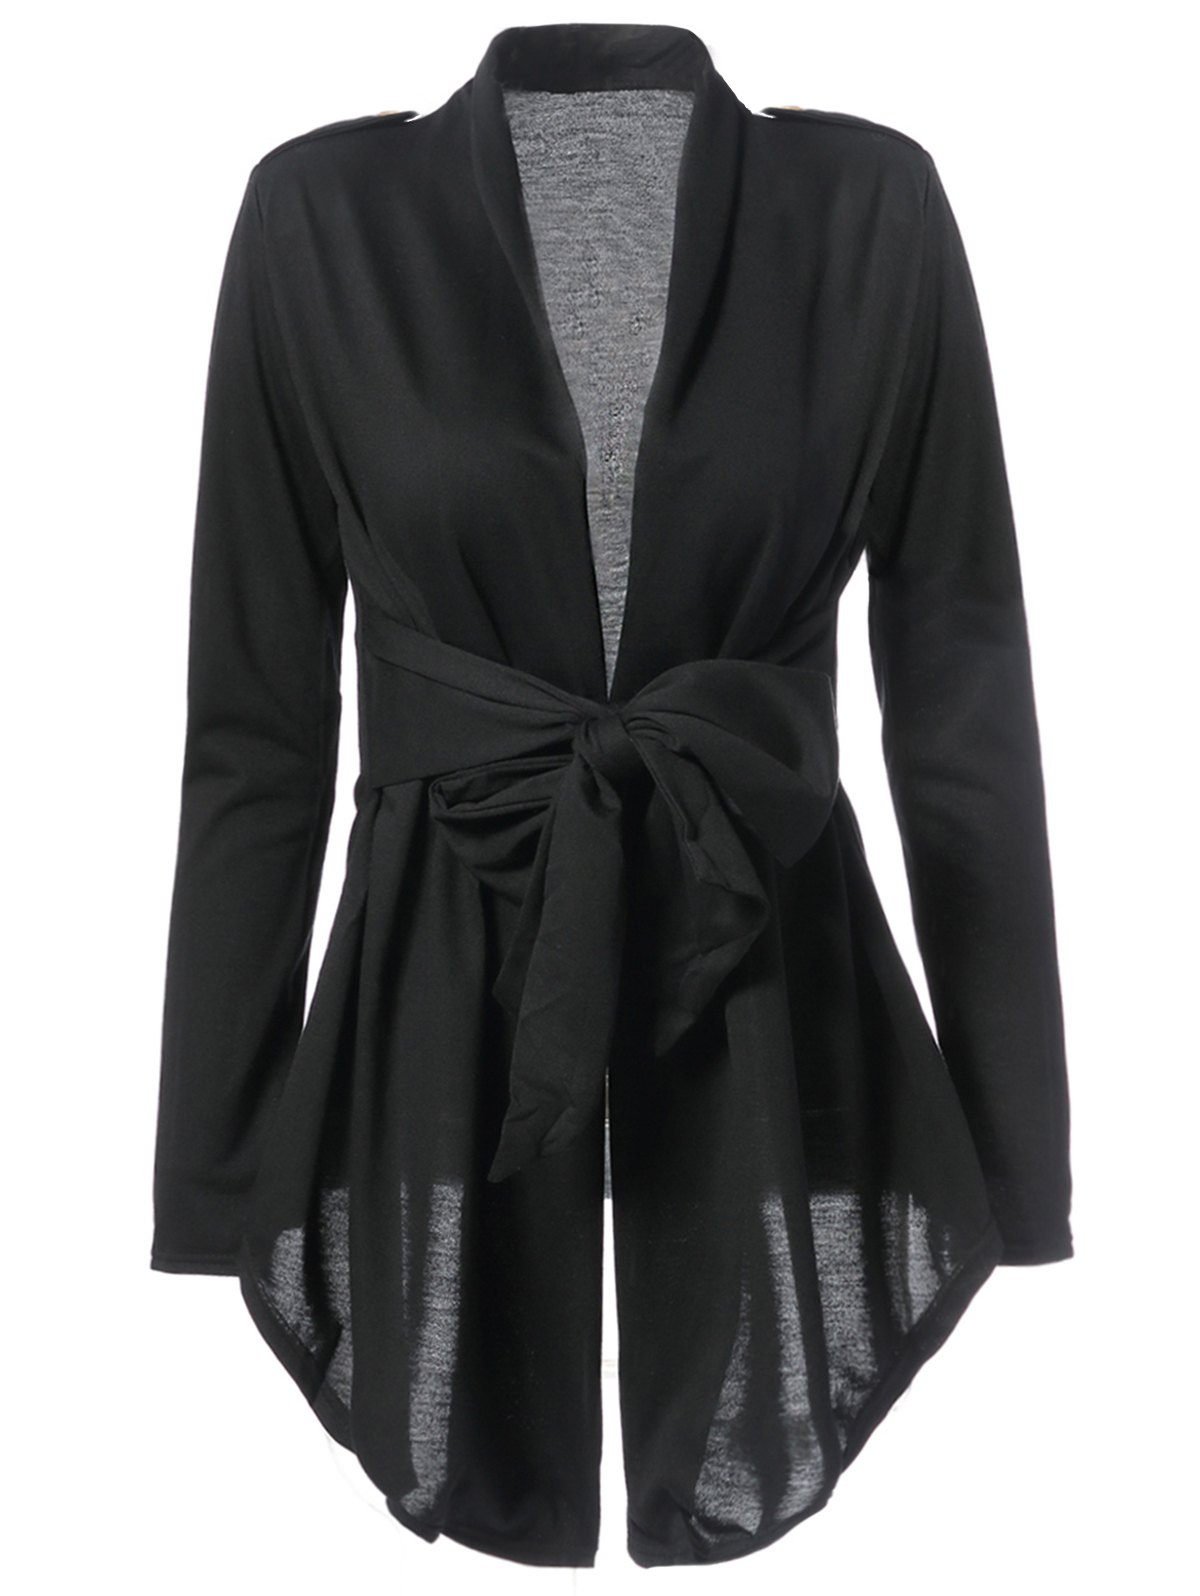 Hot Stylish Turn-Down Collar Long Sleeve Solid Color Asymmetrical Women's Coat